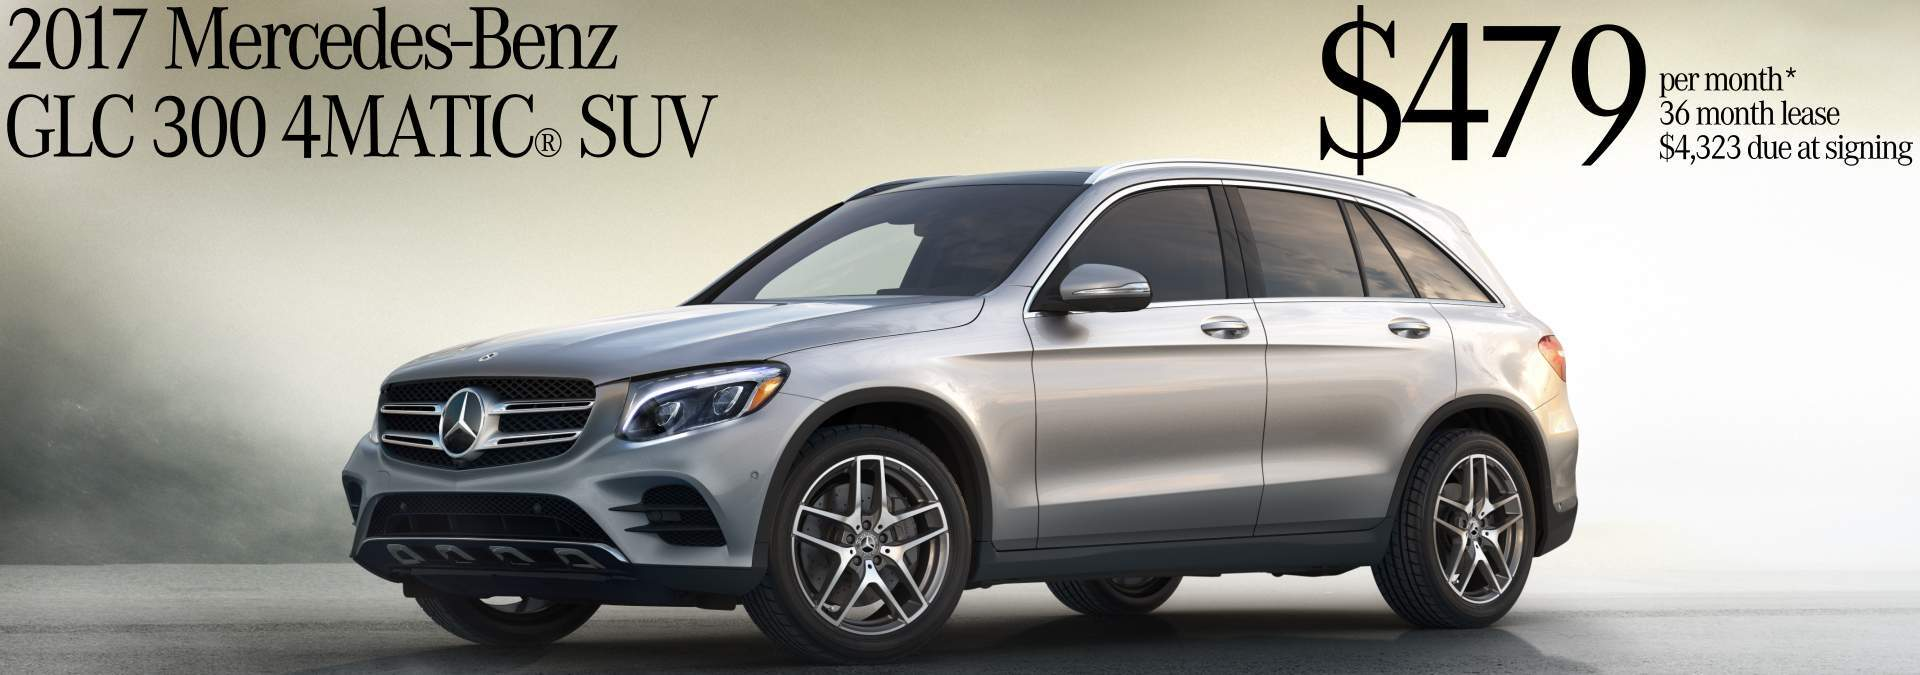 October 2017 GLC 300 Lease Offer